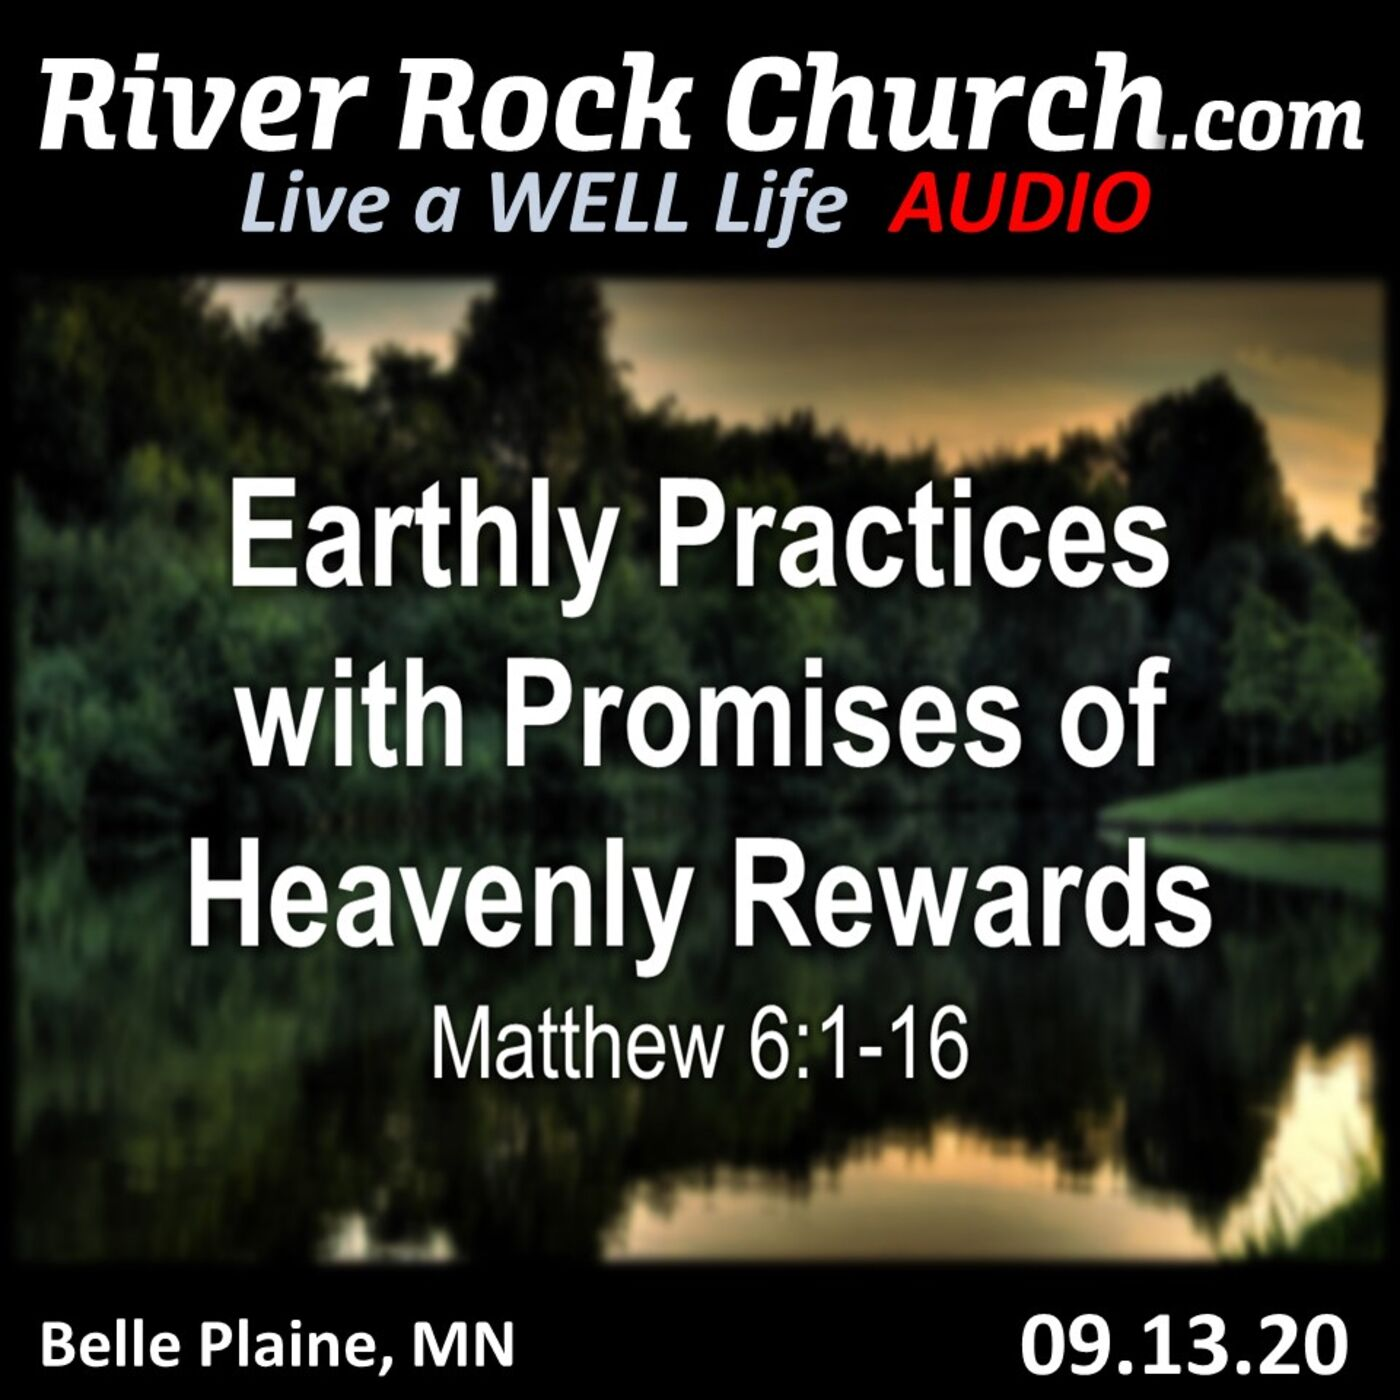 Earthly Practices with Promises of Heavenly Rewards